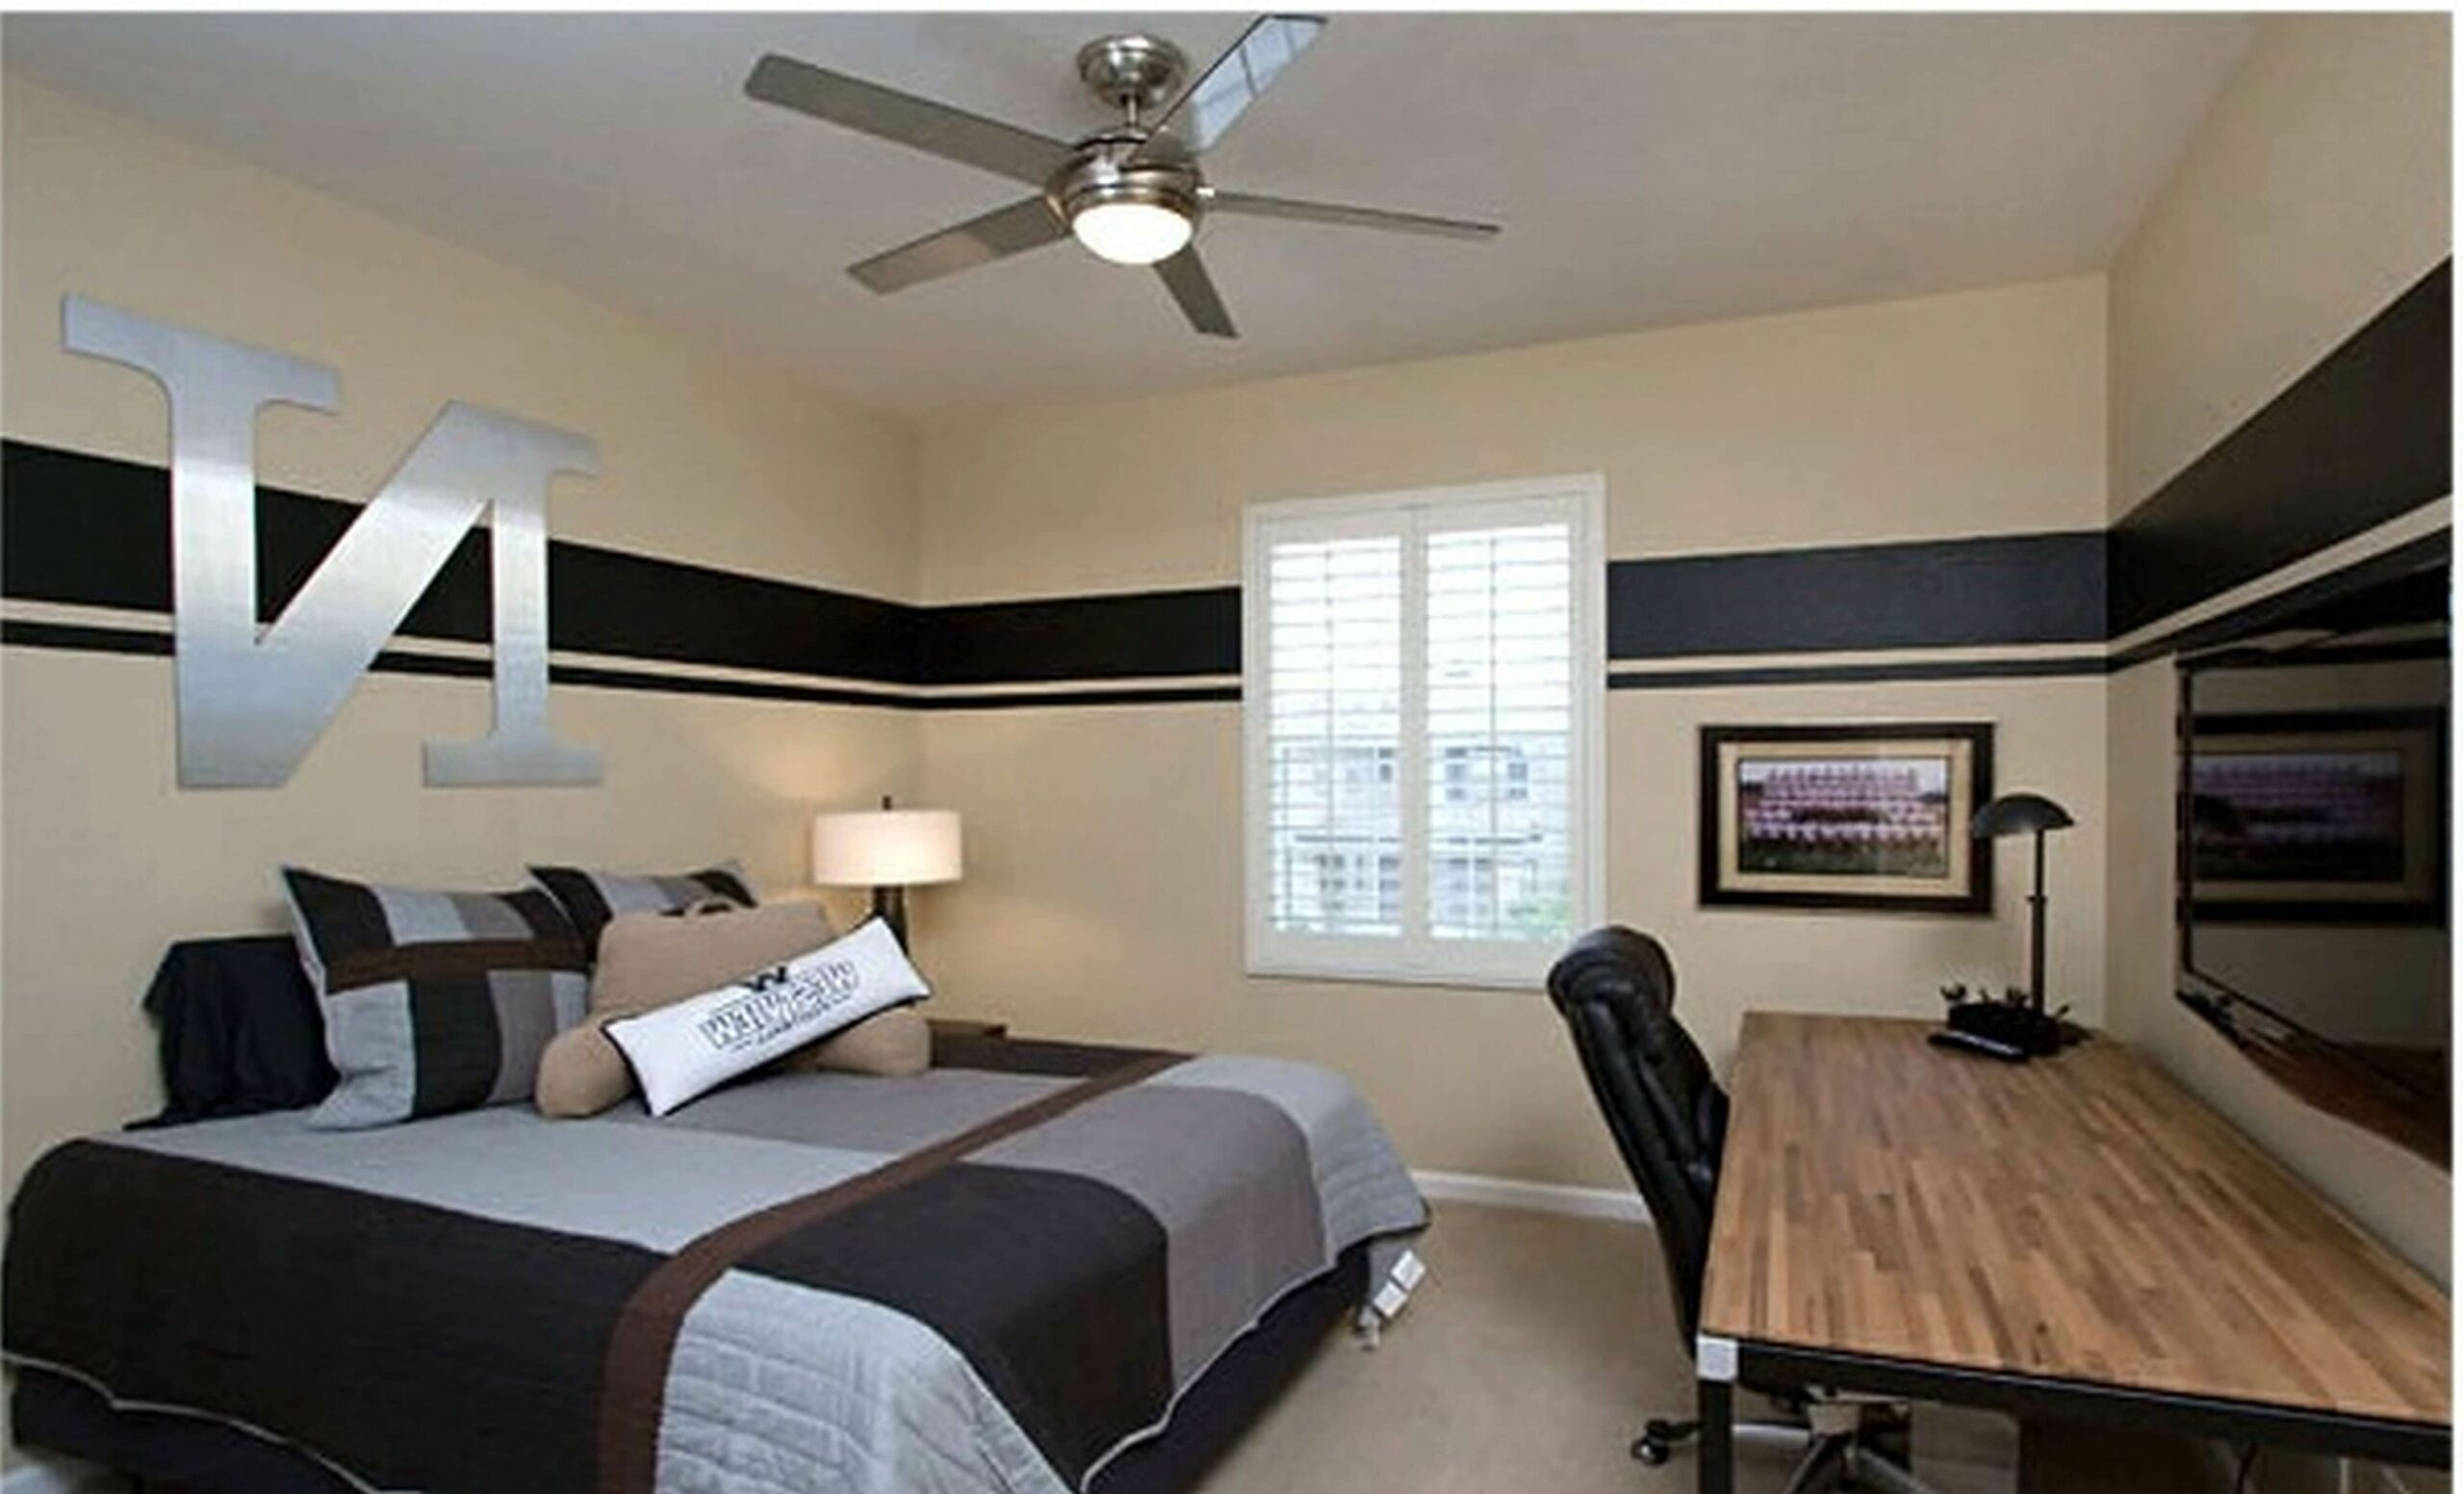 Uncategorized Cool Room Decor Ideas For Guys Dorm Rooms Small ..